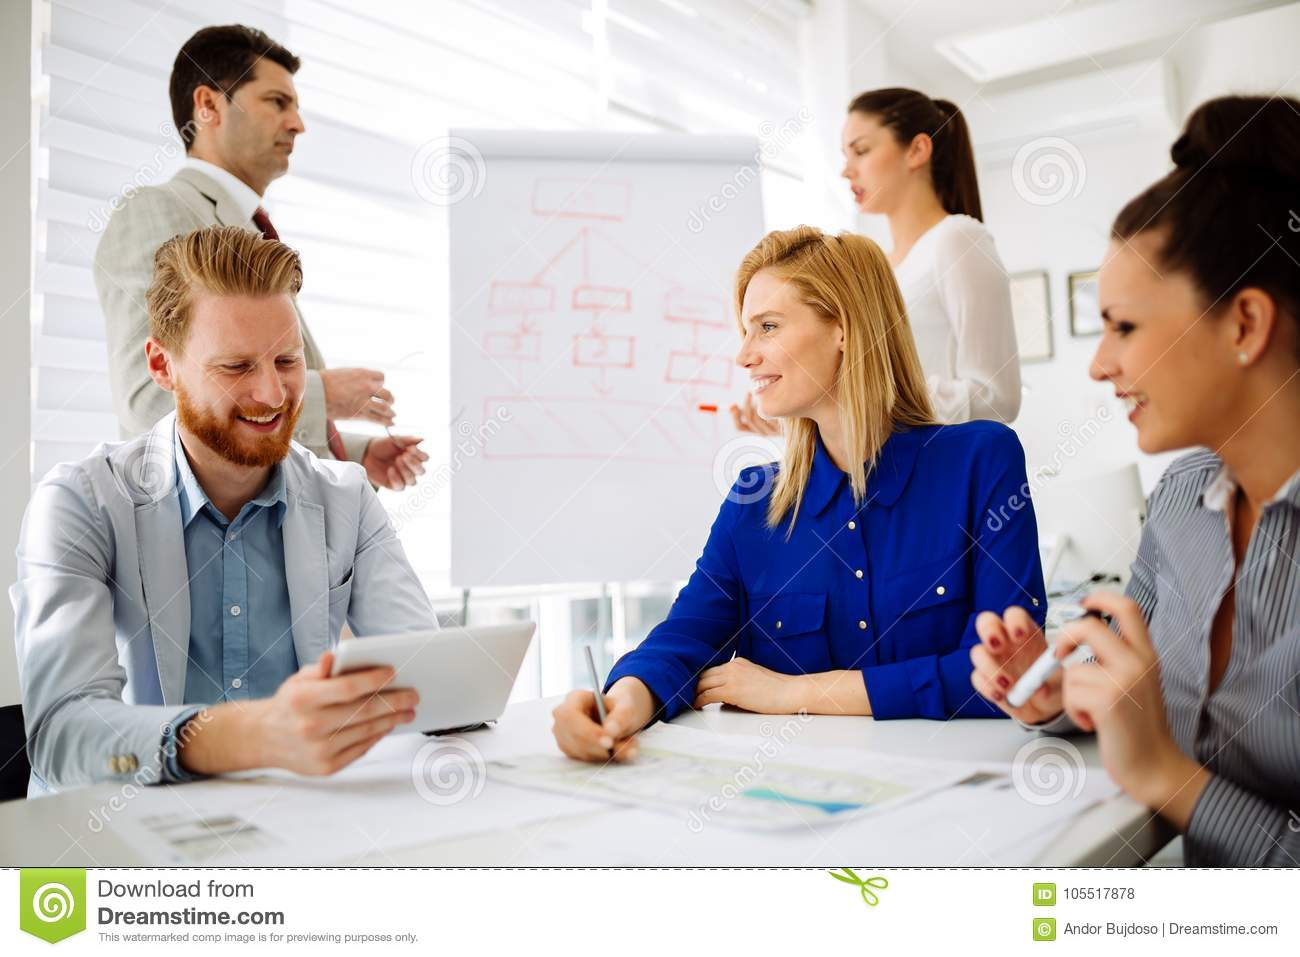 Business people having a board meeting